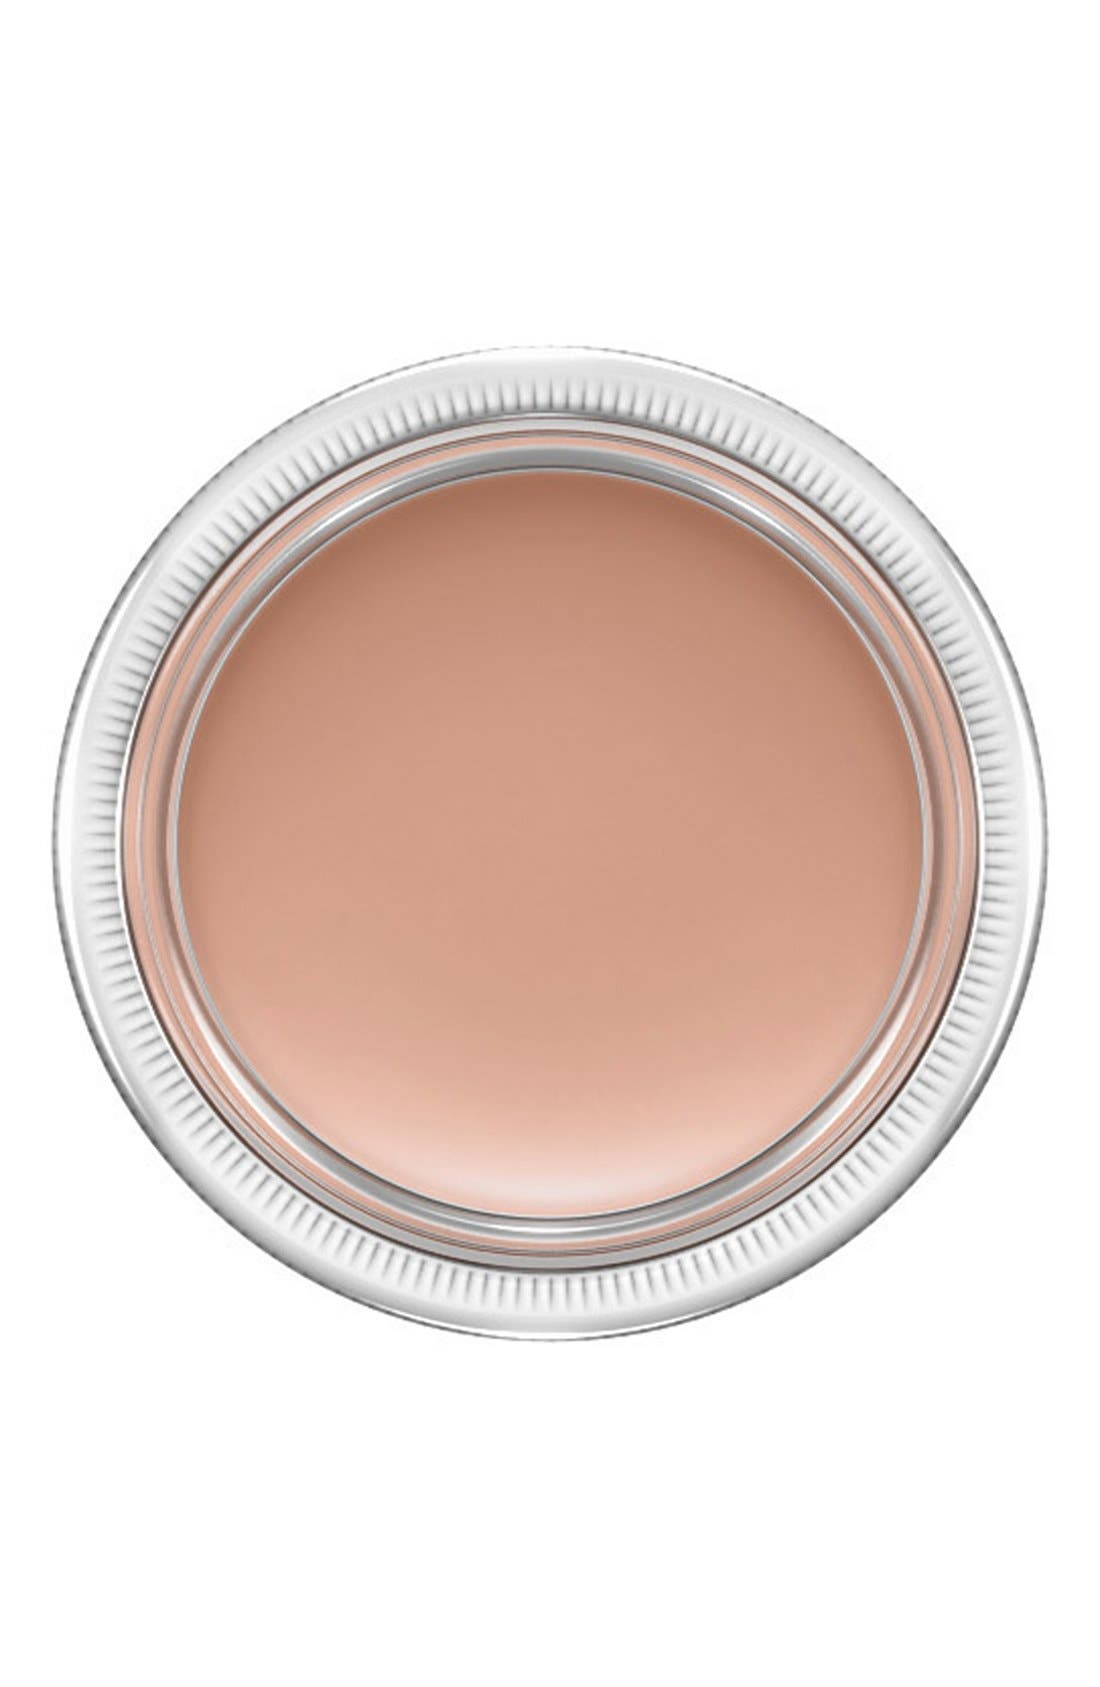 MAC 'Pro Longwear' Paint Pot